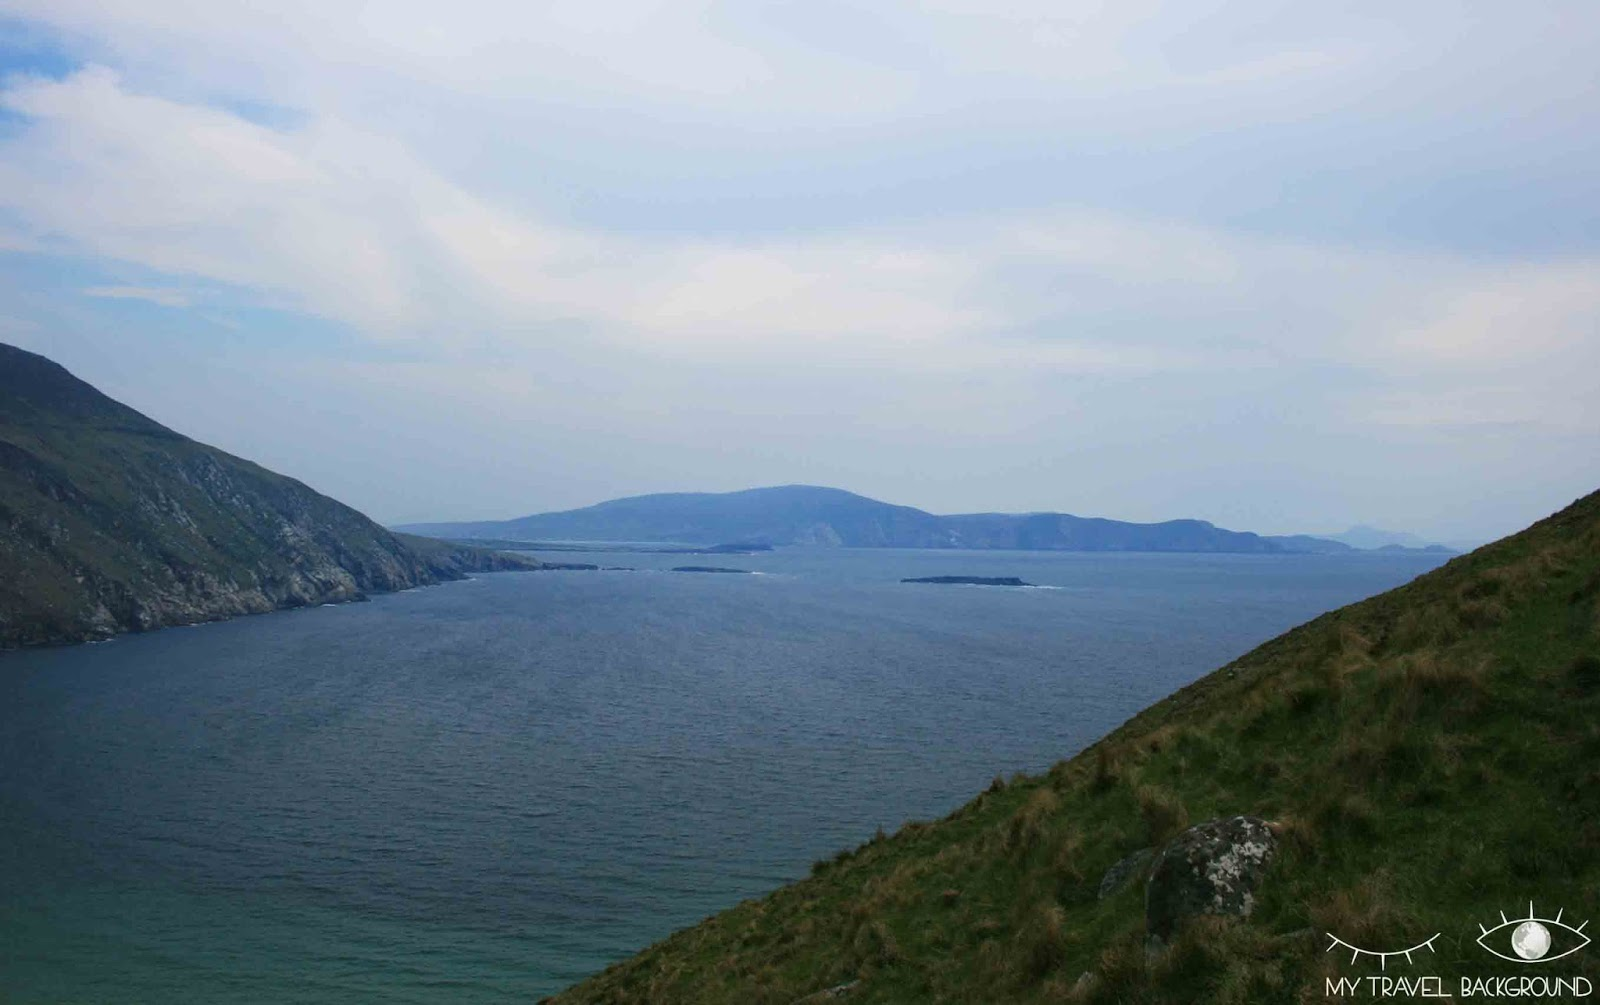 My Travel Background : un grand bol d'Eire dans le comté de Mayo en Irlande - Achill Island